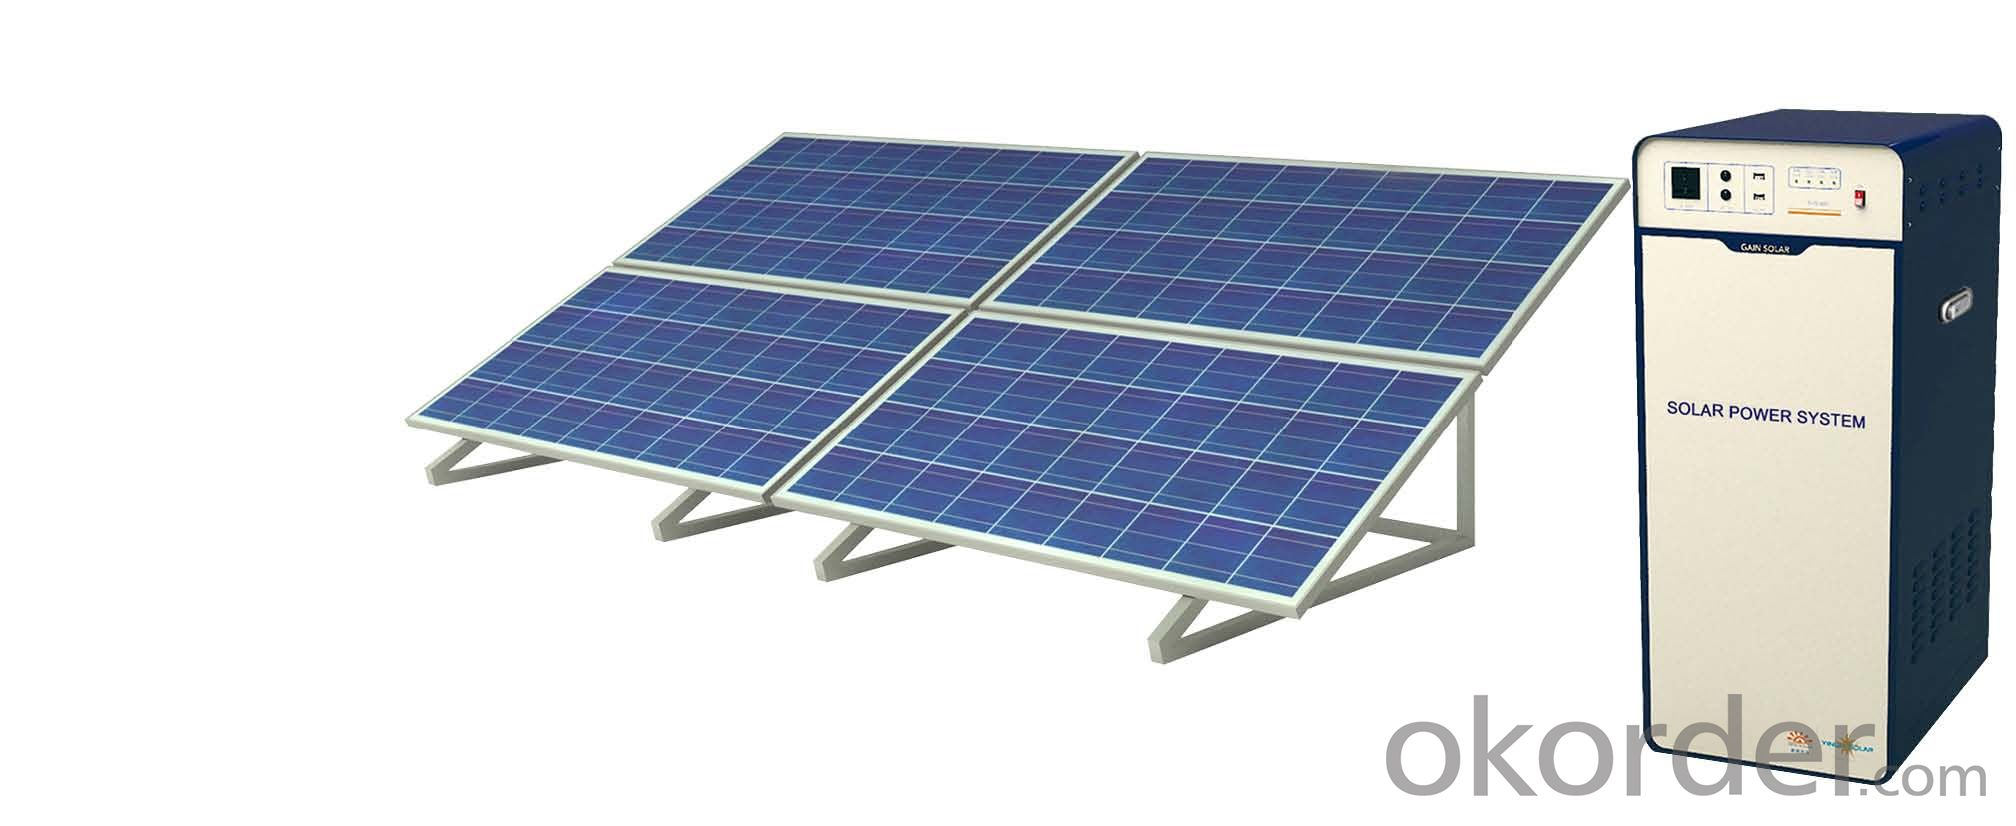 Off-grid Solar Power System JS-SPS-1000